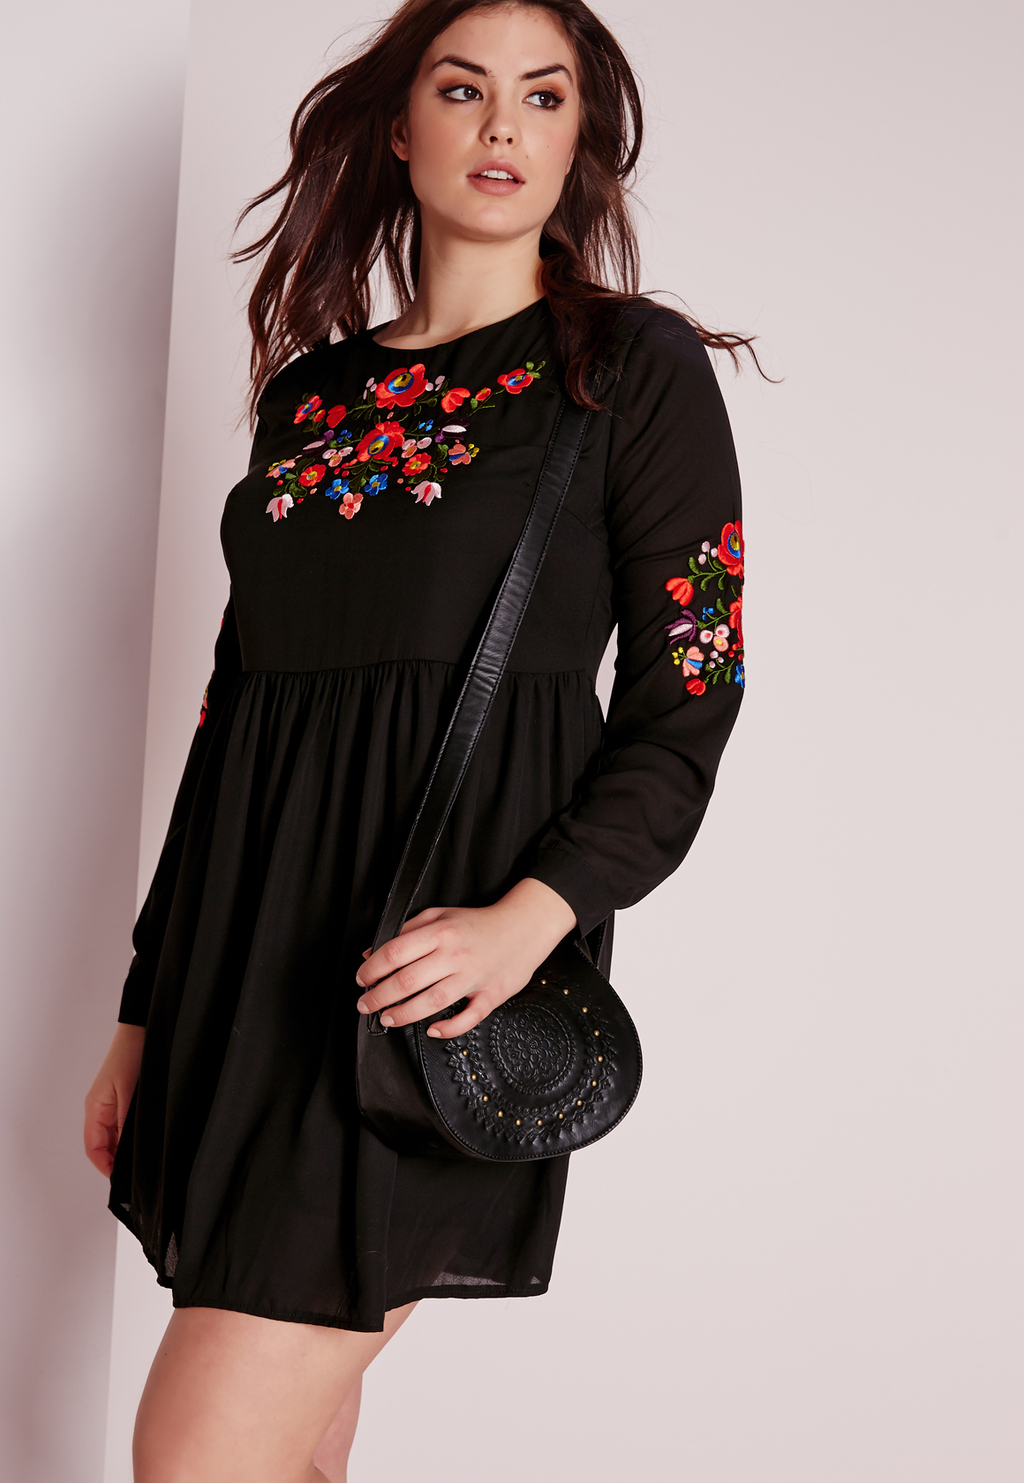 Plus Size Embroidery Dress Black, Black - style: smock; length: mid thigh; fit: loose; predominant colour: black; occasions: casual, creative work; fibres: cotton - stretch; neckline: crew; sleeve length: long sleeve; sleeve style: standard; texture group: sheer fabrics/chiffon/organza etc.; pattern type: fabric; pattern size: standard; pattern: florals; embellishment: embroidered; multicoloured: multicoloured; season: s/s 2016; wardrobe: highlight; embellishment location: bust, sleeve/cuff